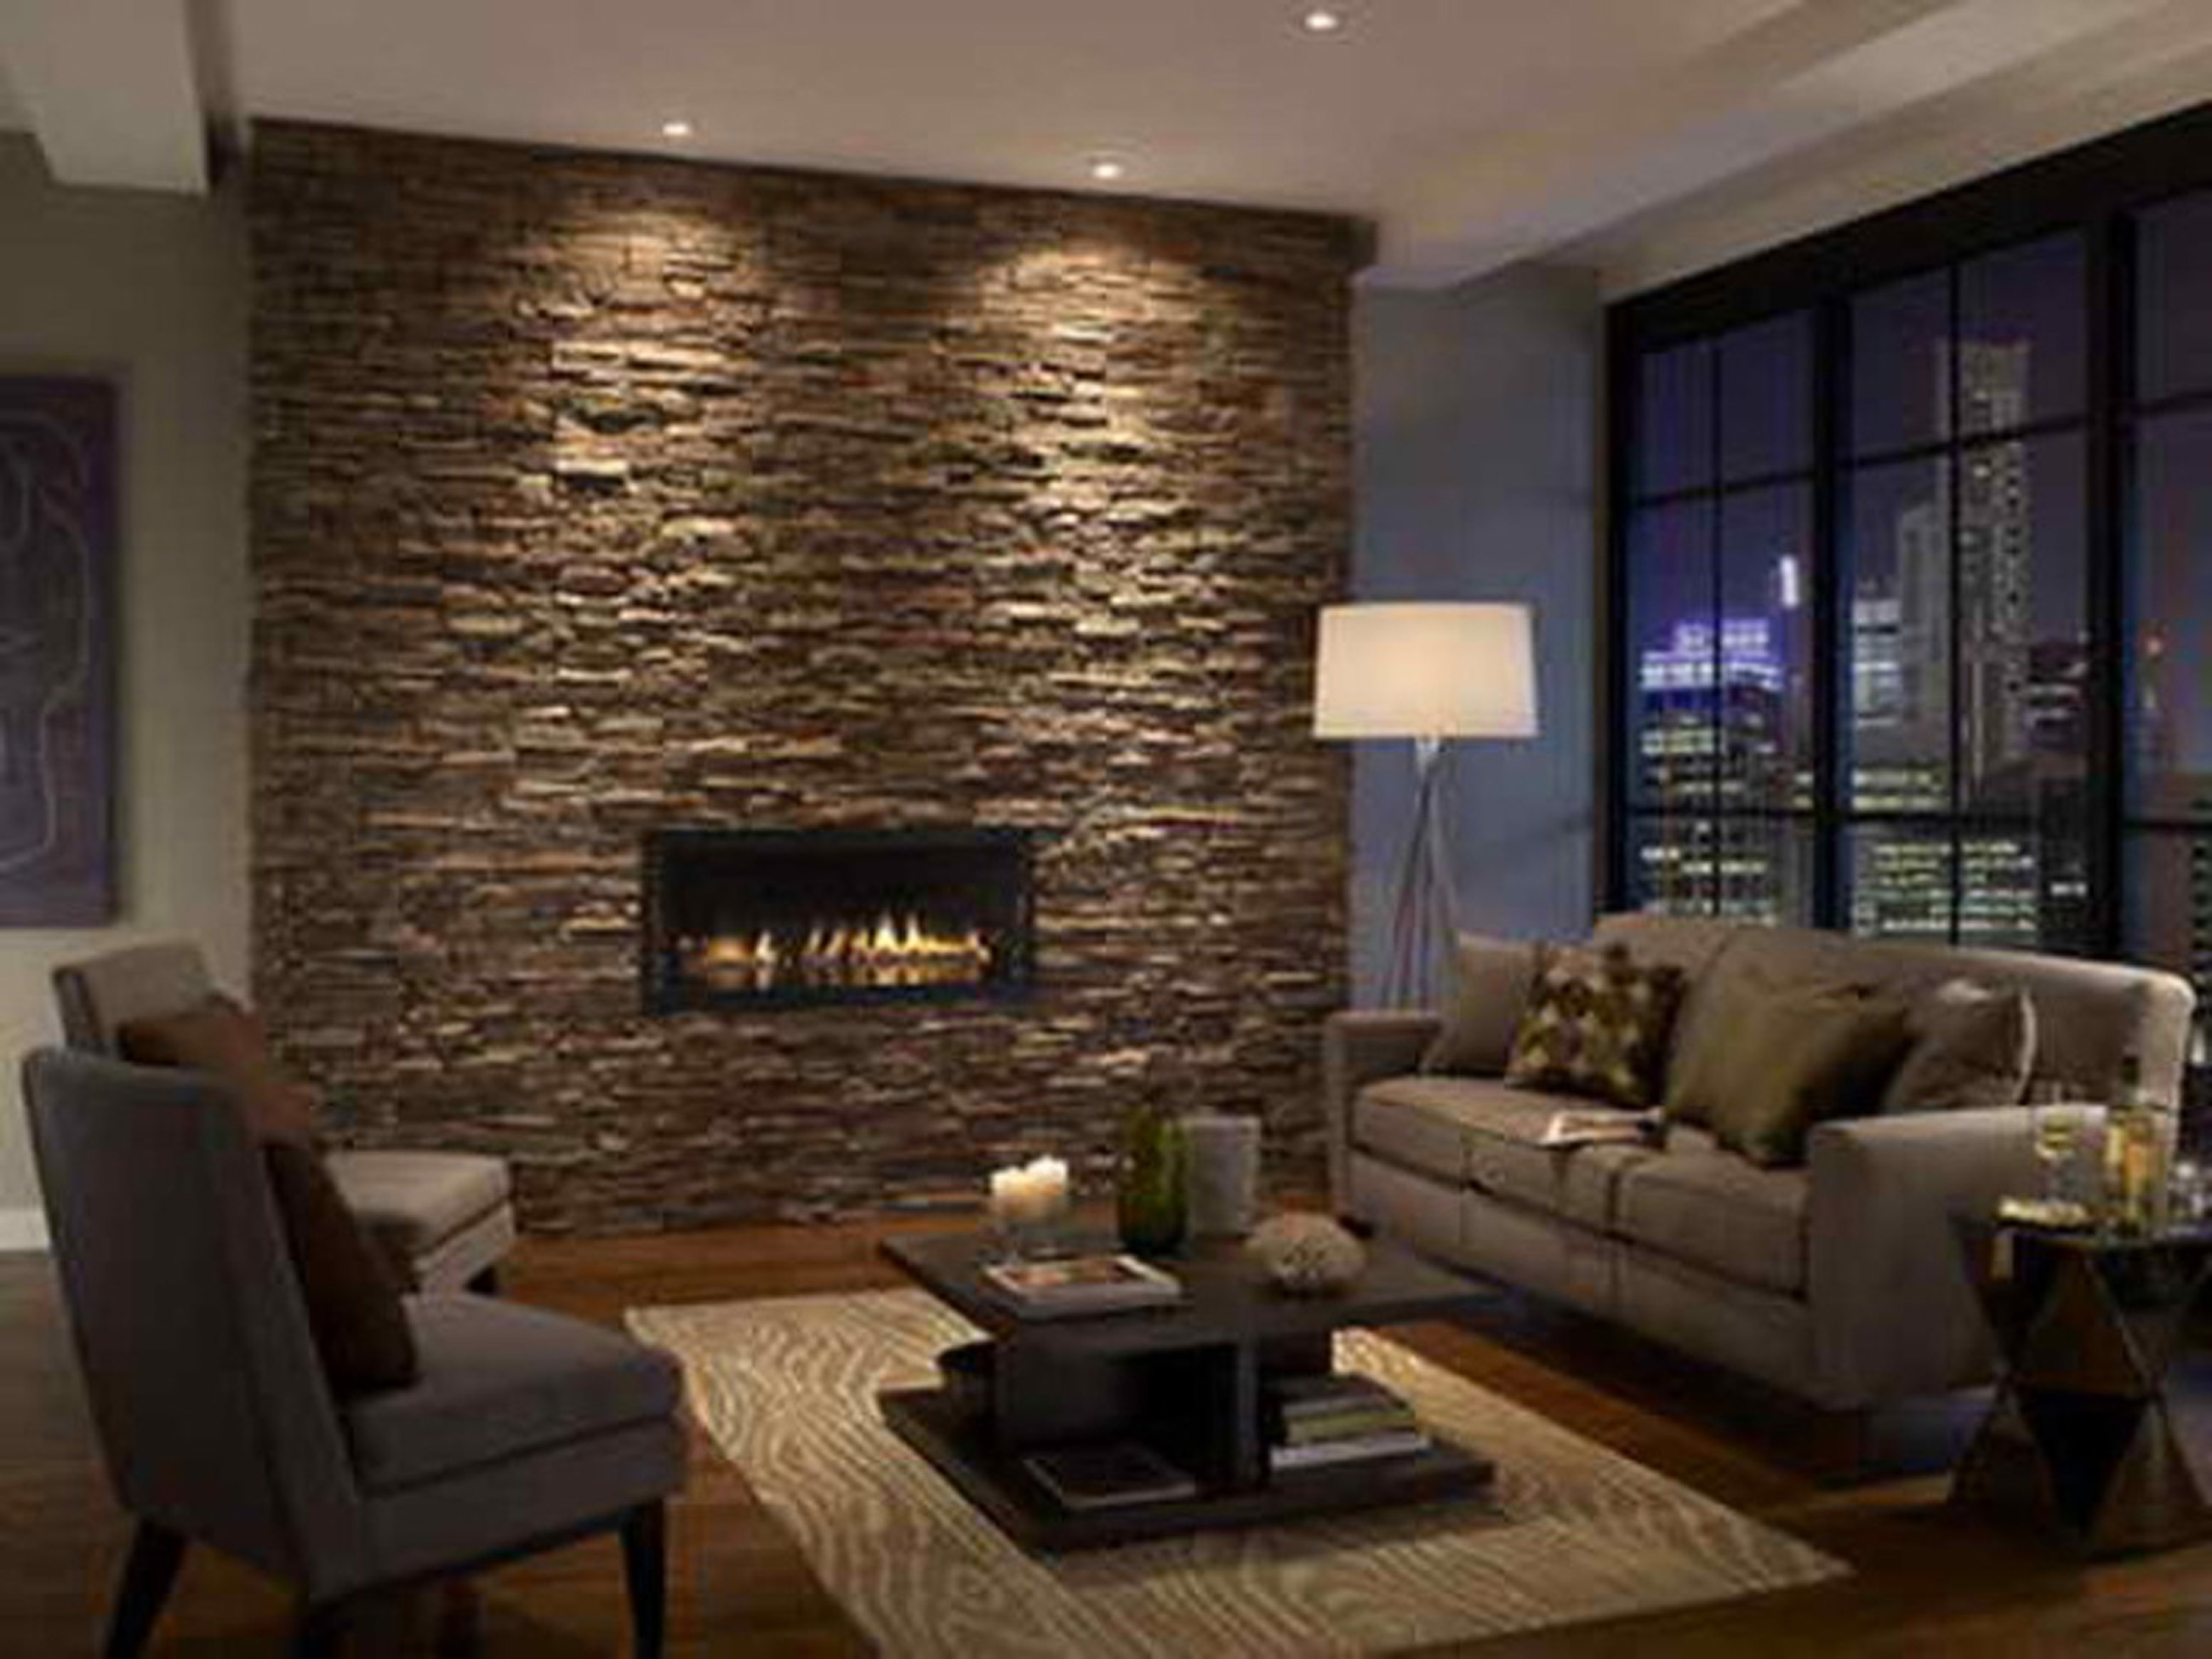 Apartments Decor Of Simple Stone Tile Fireplace With Wooden Flooring Featuring Recessed Ceiling Lights With Cozy Sitting Set Complete With Floor Lamp With Unique Coffee Table (Image 31 of 45)